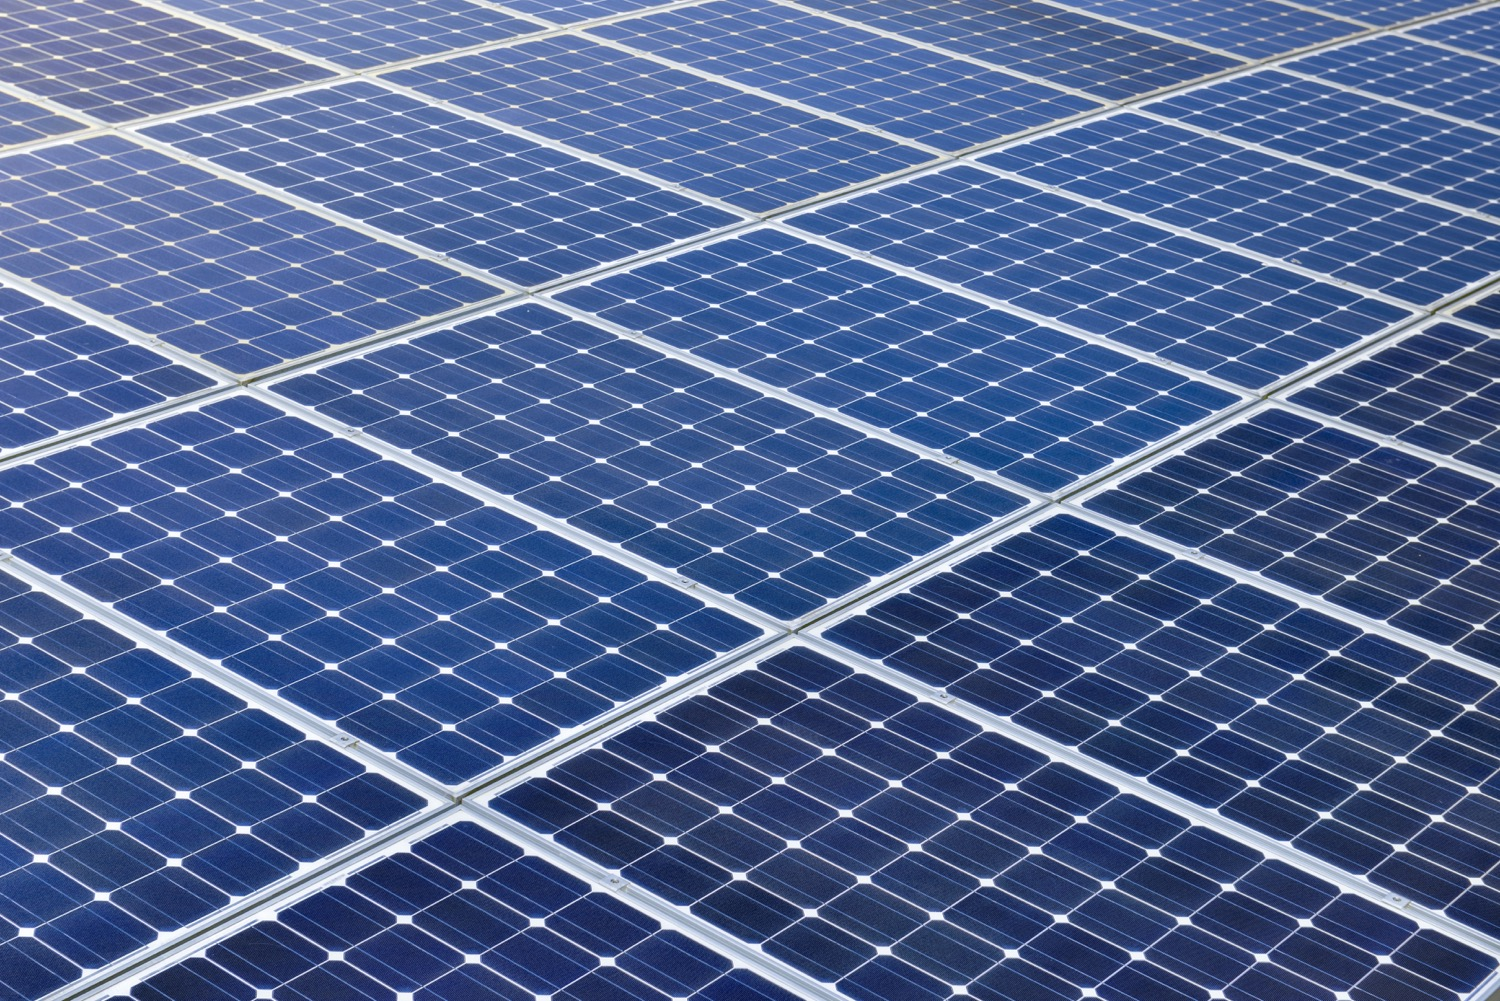 South Africa To Construct 250mw Solar Pv In Reipppp Round